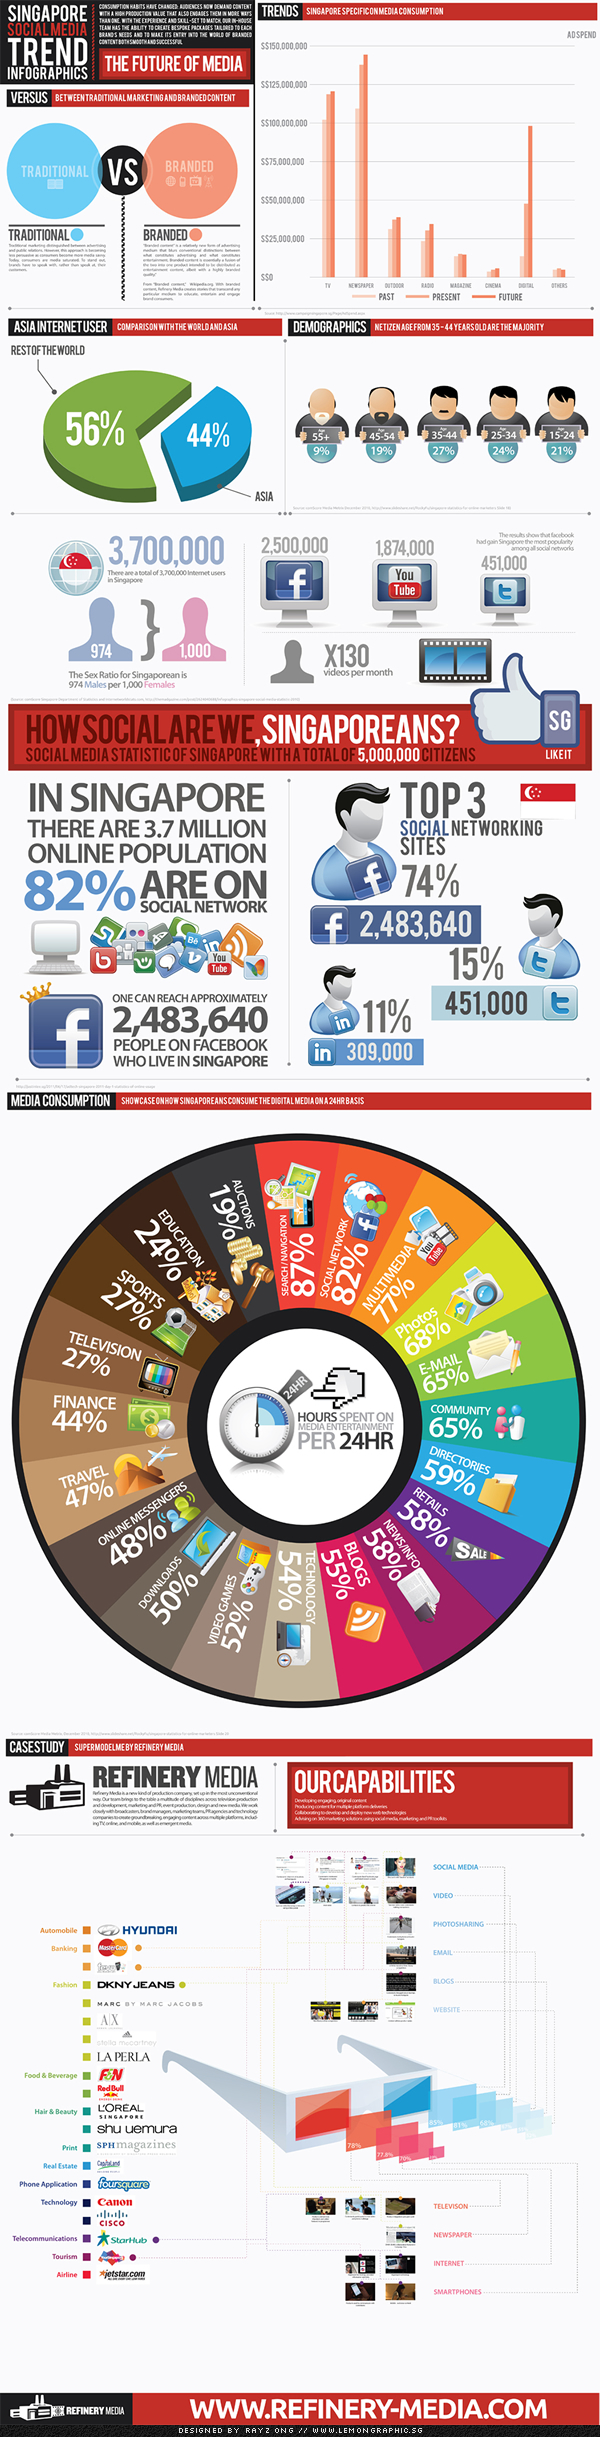 The future of Media infographic